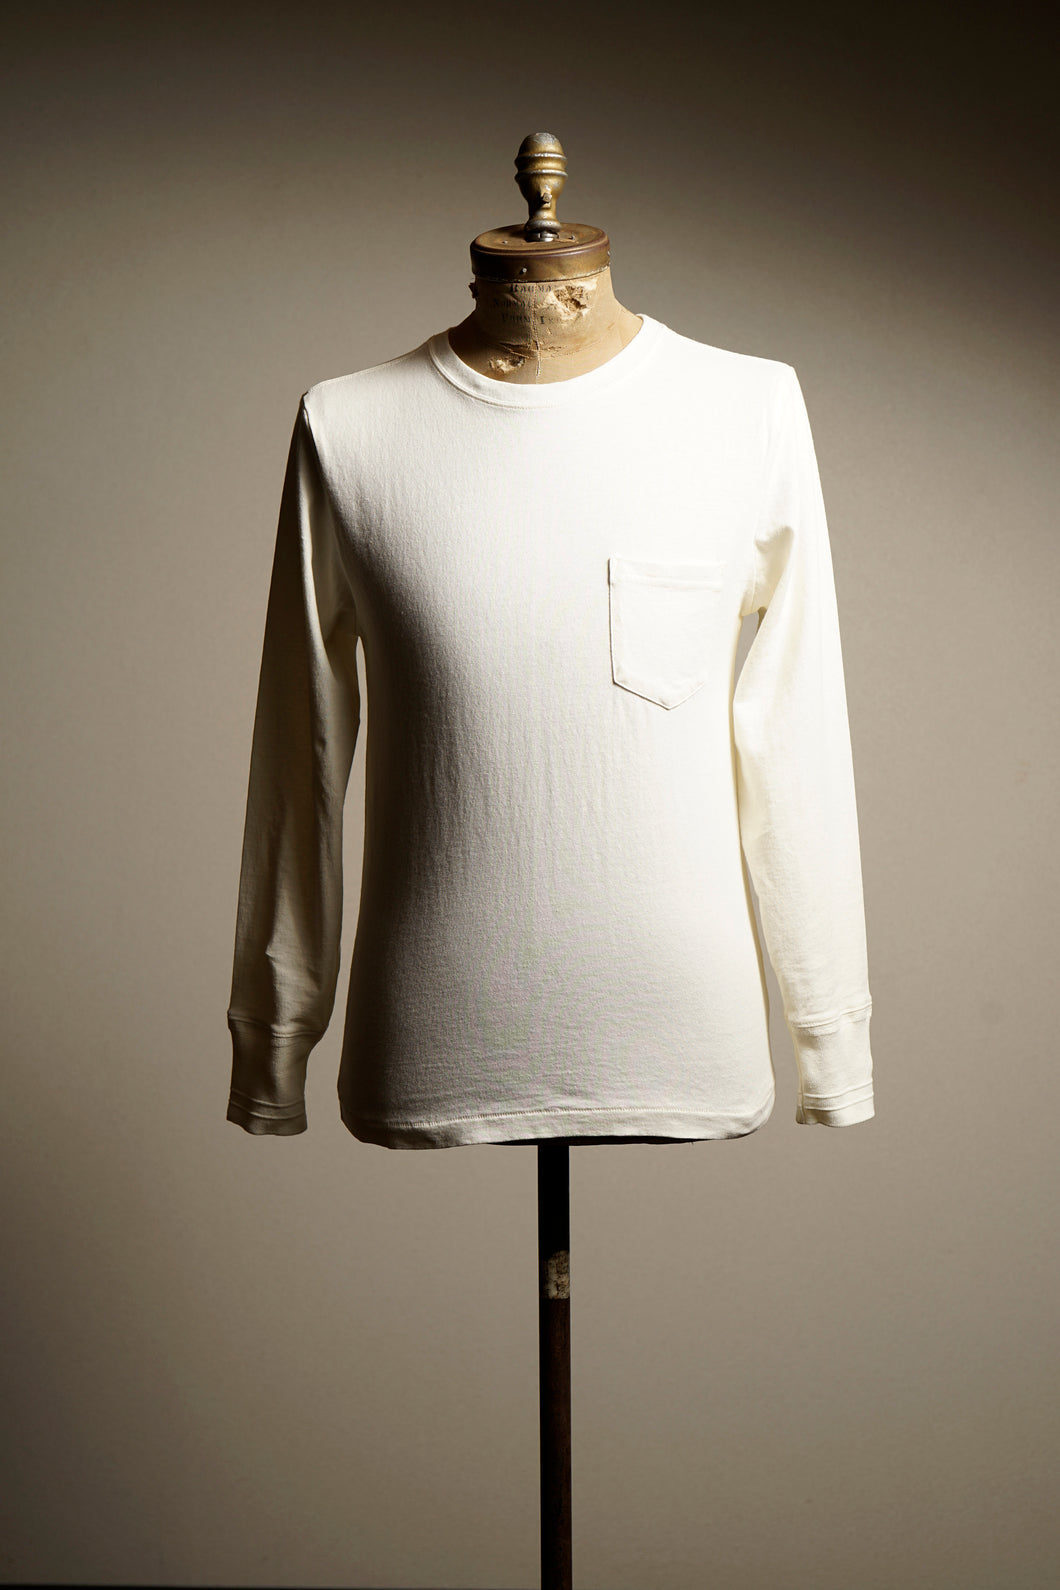 GLADHAND - 25  / POCKET L/S T-SHIRTS